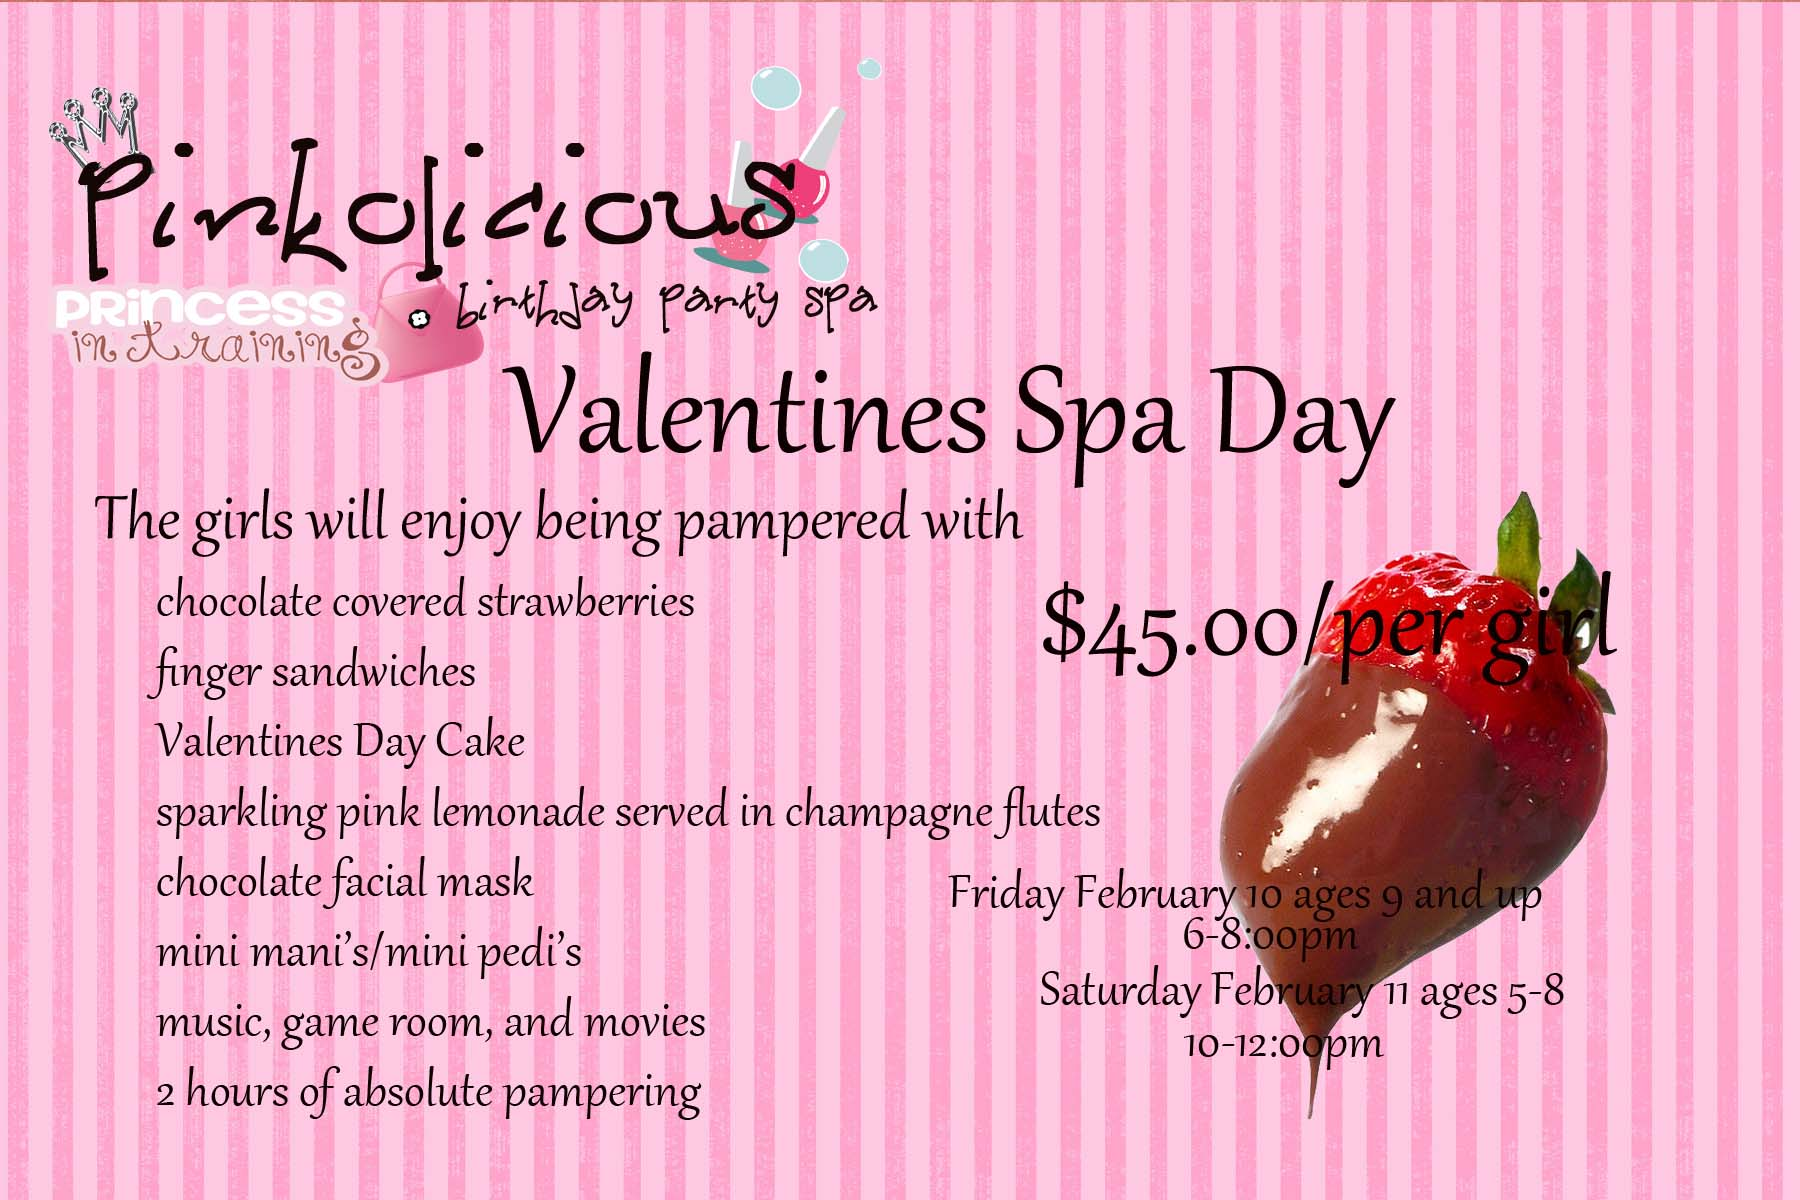 we're having a valentines spa day | pinkolicious birthday party spa, Ideas